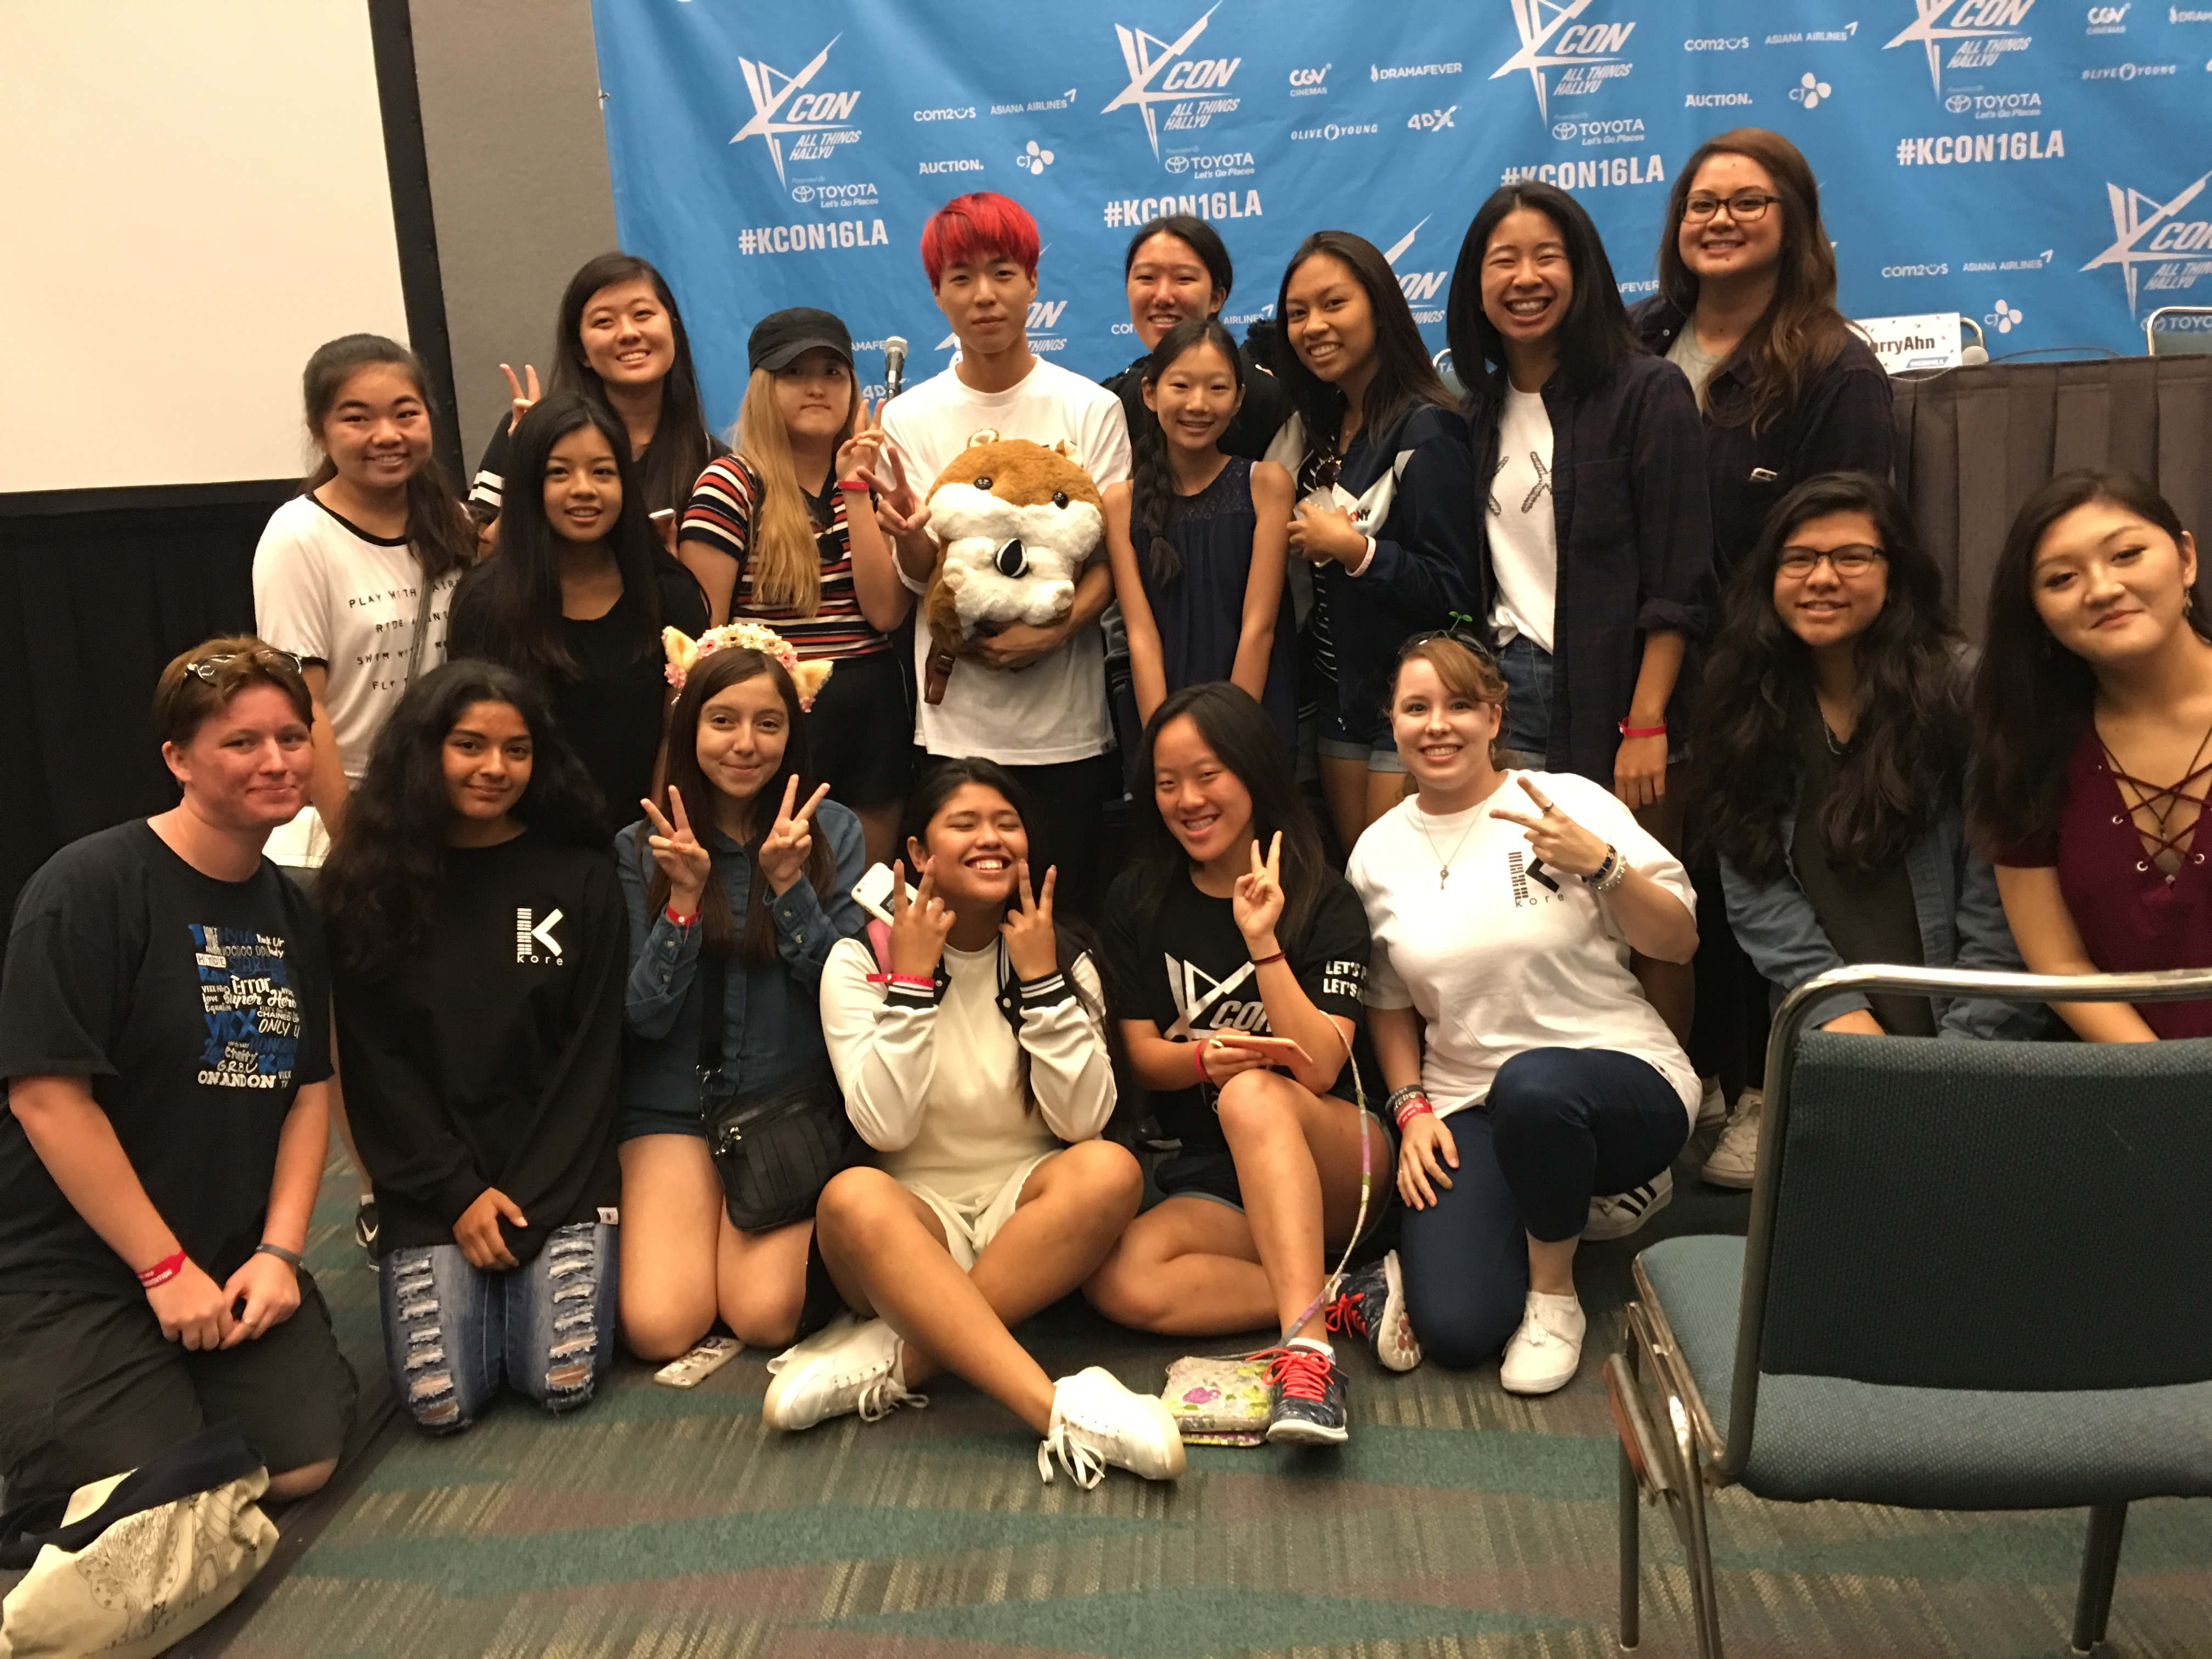 Meet greet juncurryahn kcon usa official site we hope you enjoyed getting the chance to get to know jun sung a little better tell us your favorite moments from his meet greet in the comments below kristyandbryce Image collections